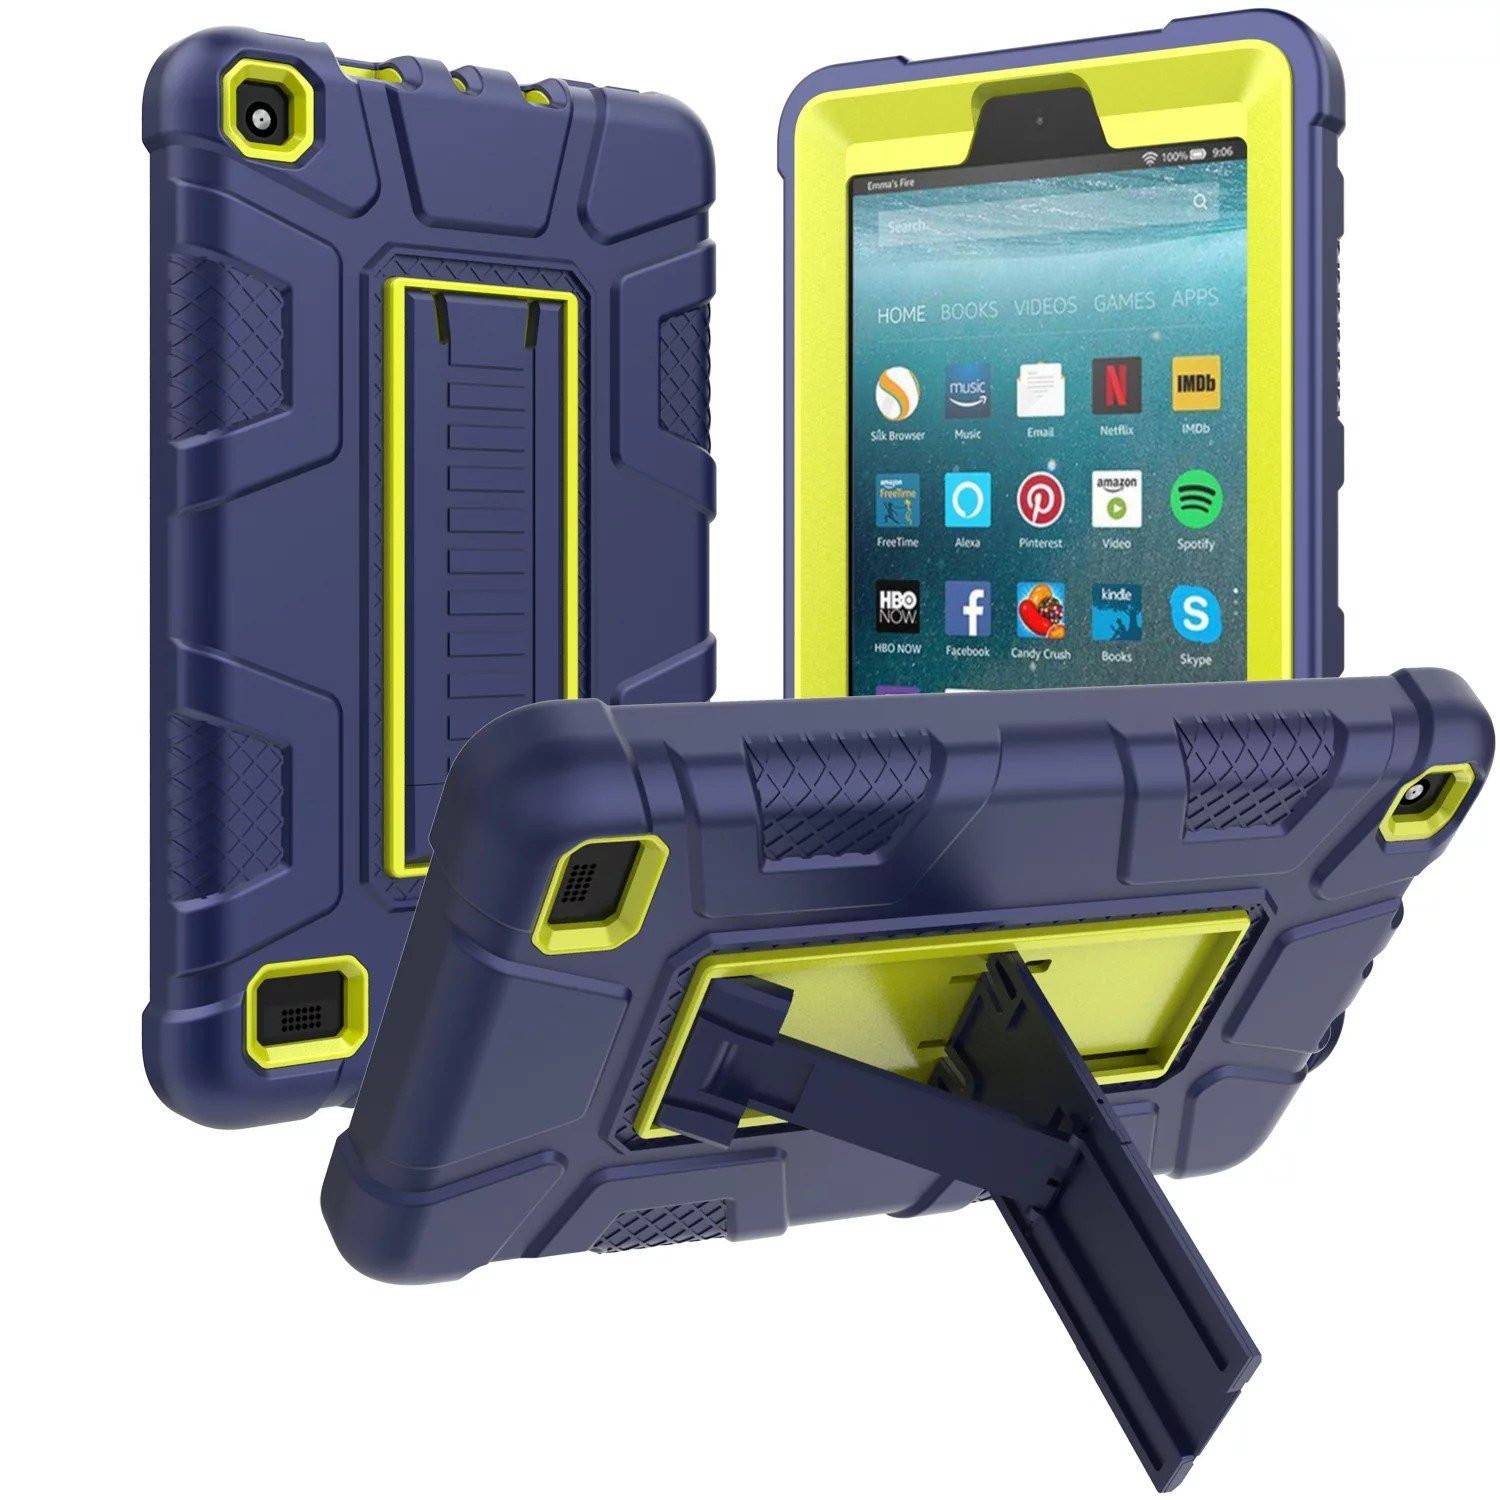 Allytech Shockproof Case for Amazon 7 Inch Tablet Fire 7 2019 9th Generation. Heavy Duty Protective Kickstand Rubber Kids Children Proof Cases ...